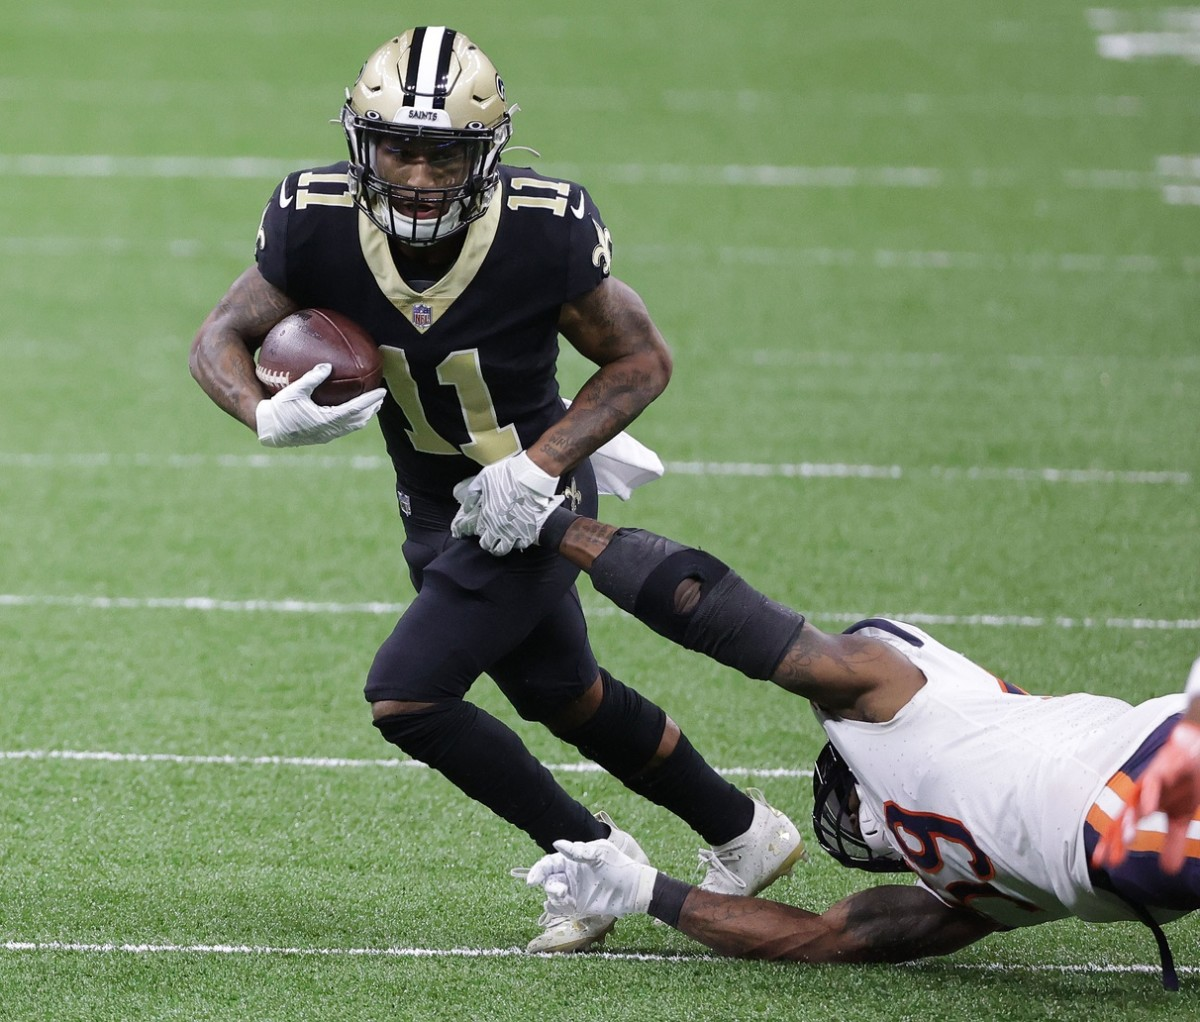 New Orleans Saints wide receiver Deonte Harris (11) runs the ball against the Chicago Bears in the NFC Wild Card game. Mandatory Credit: Derick E. Hingle-USA TODAY